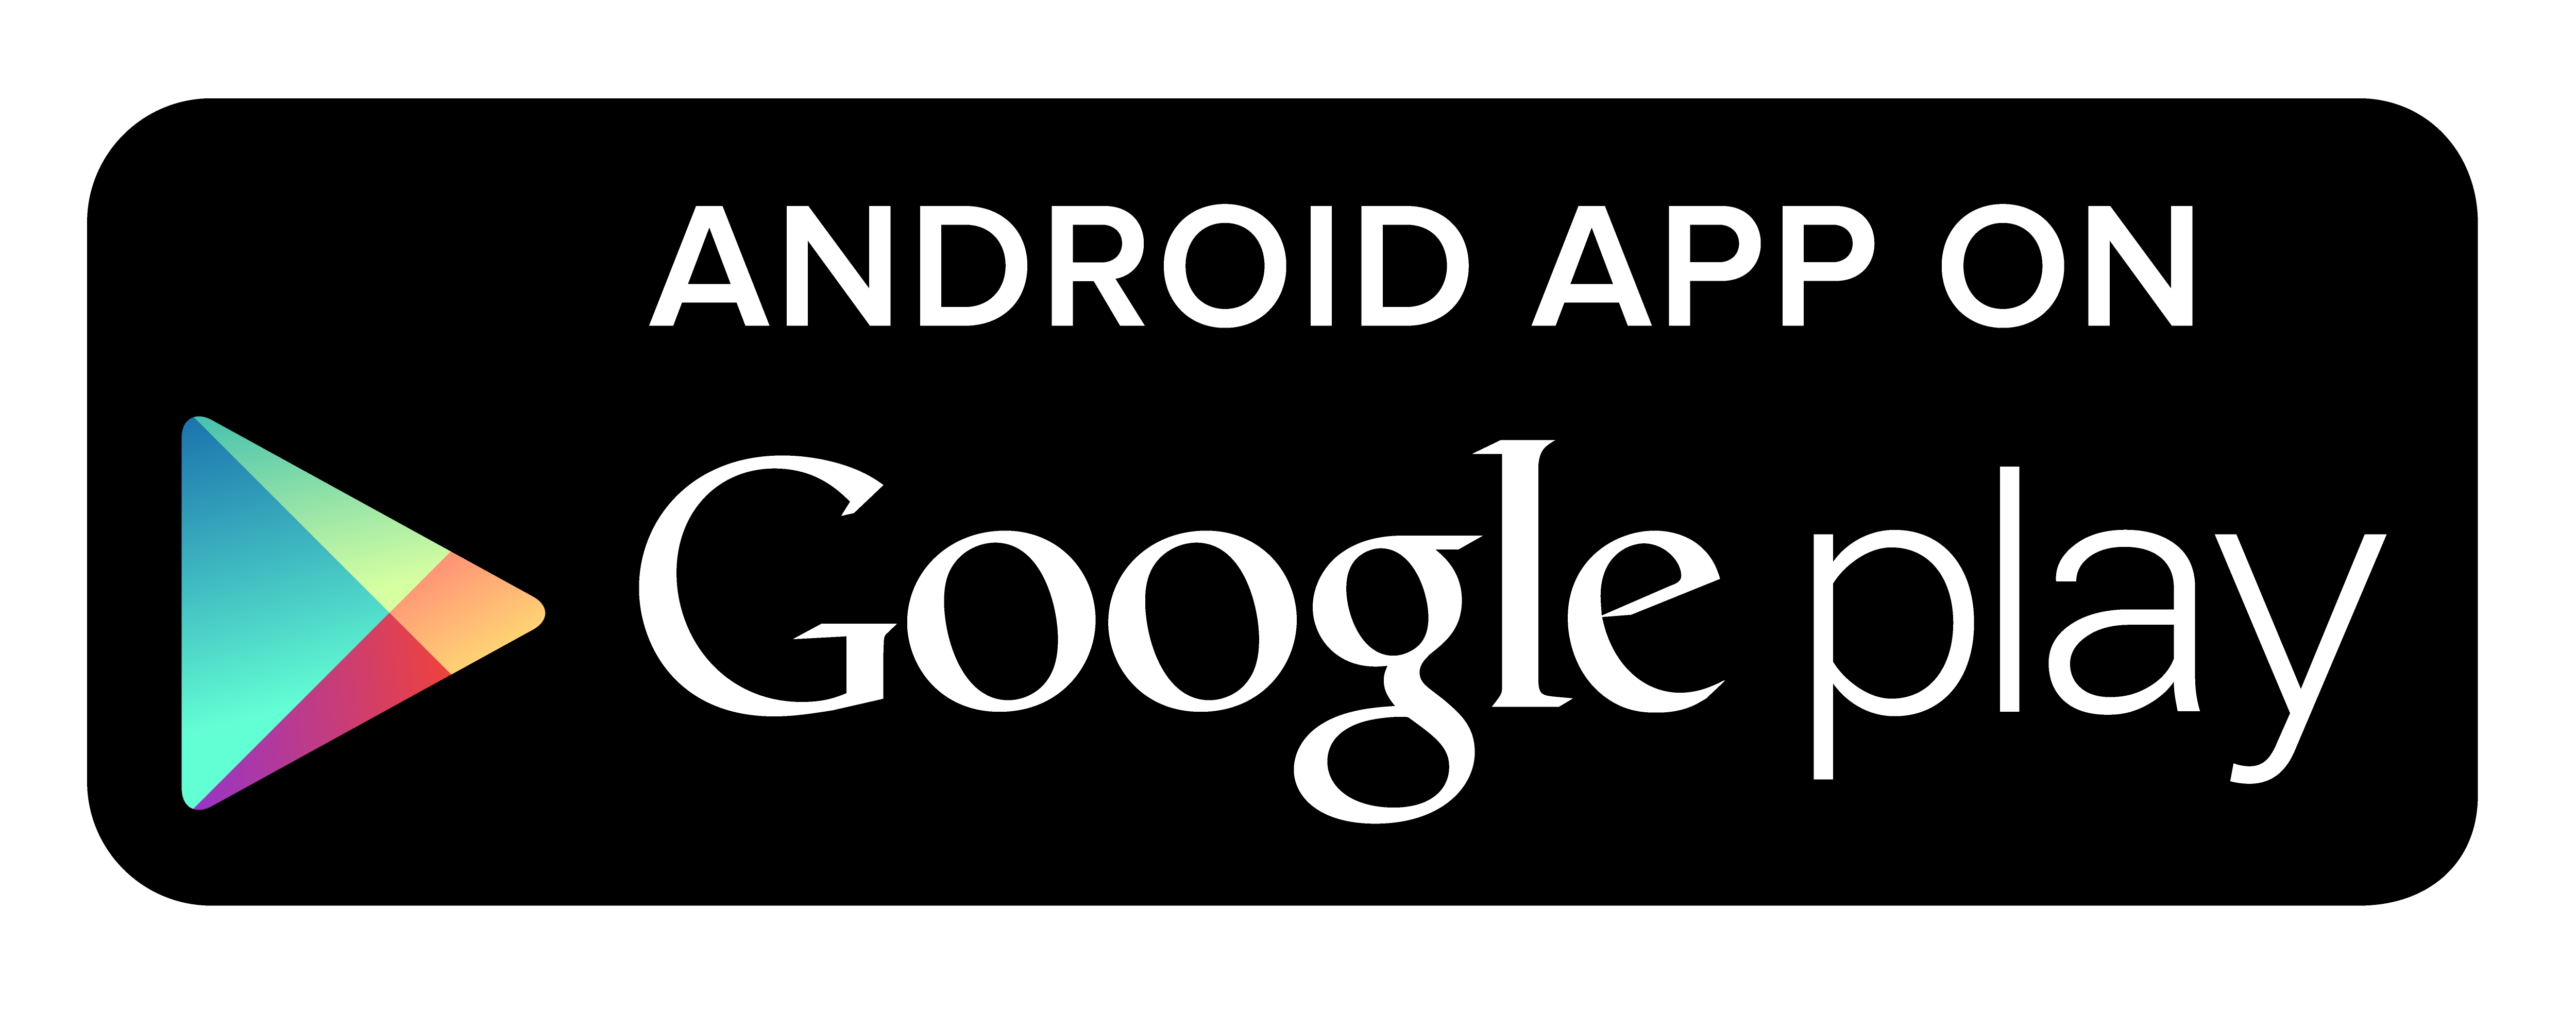 Martin luther king android apps on google play - Connect